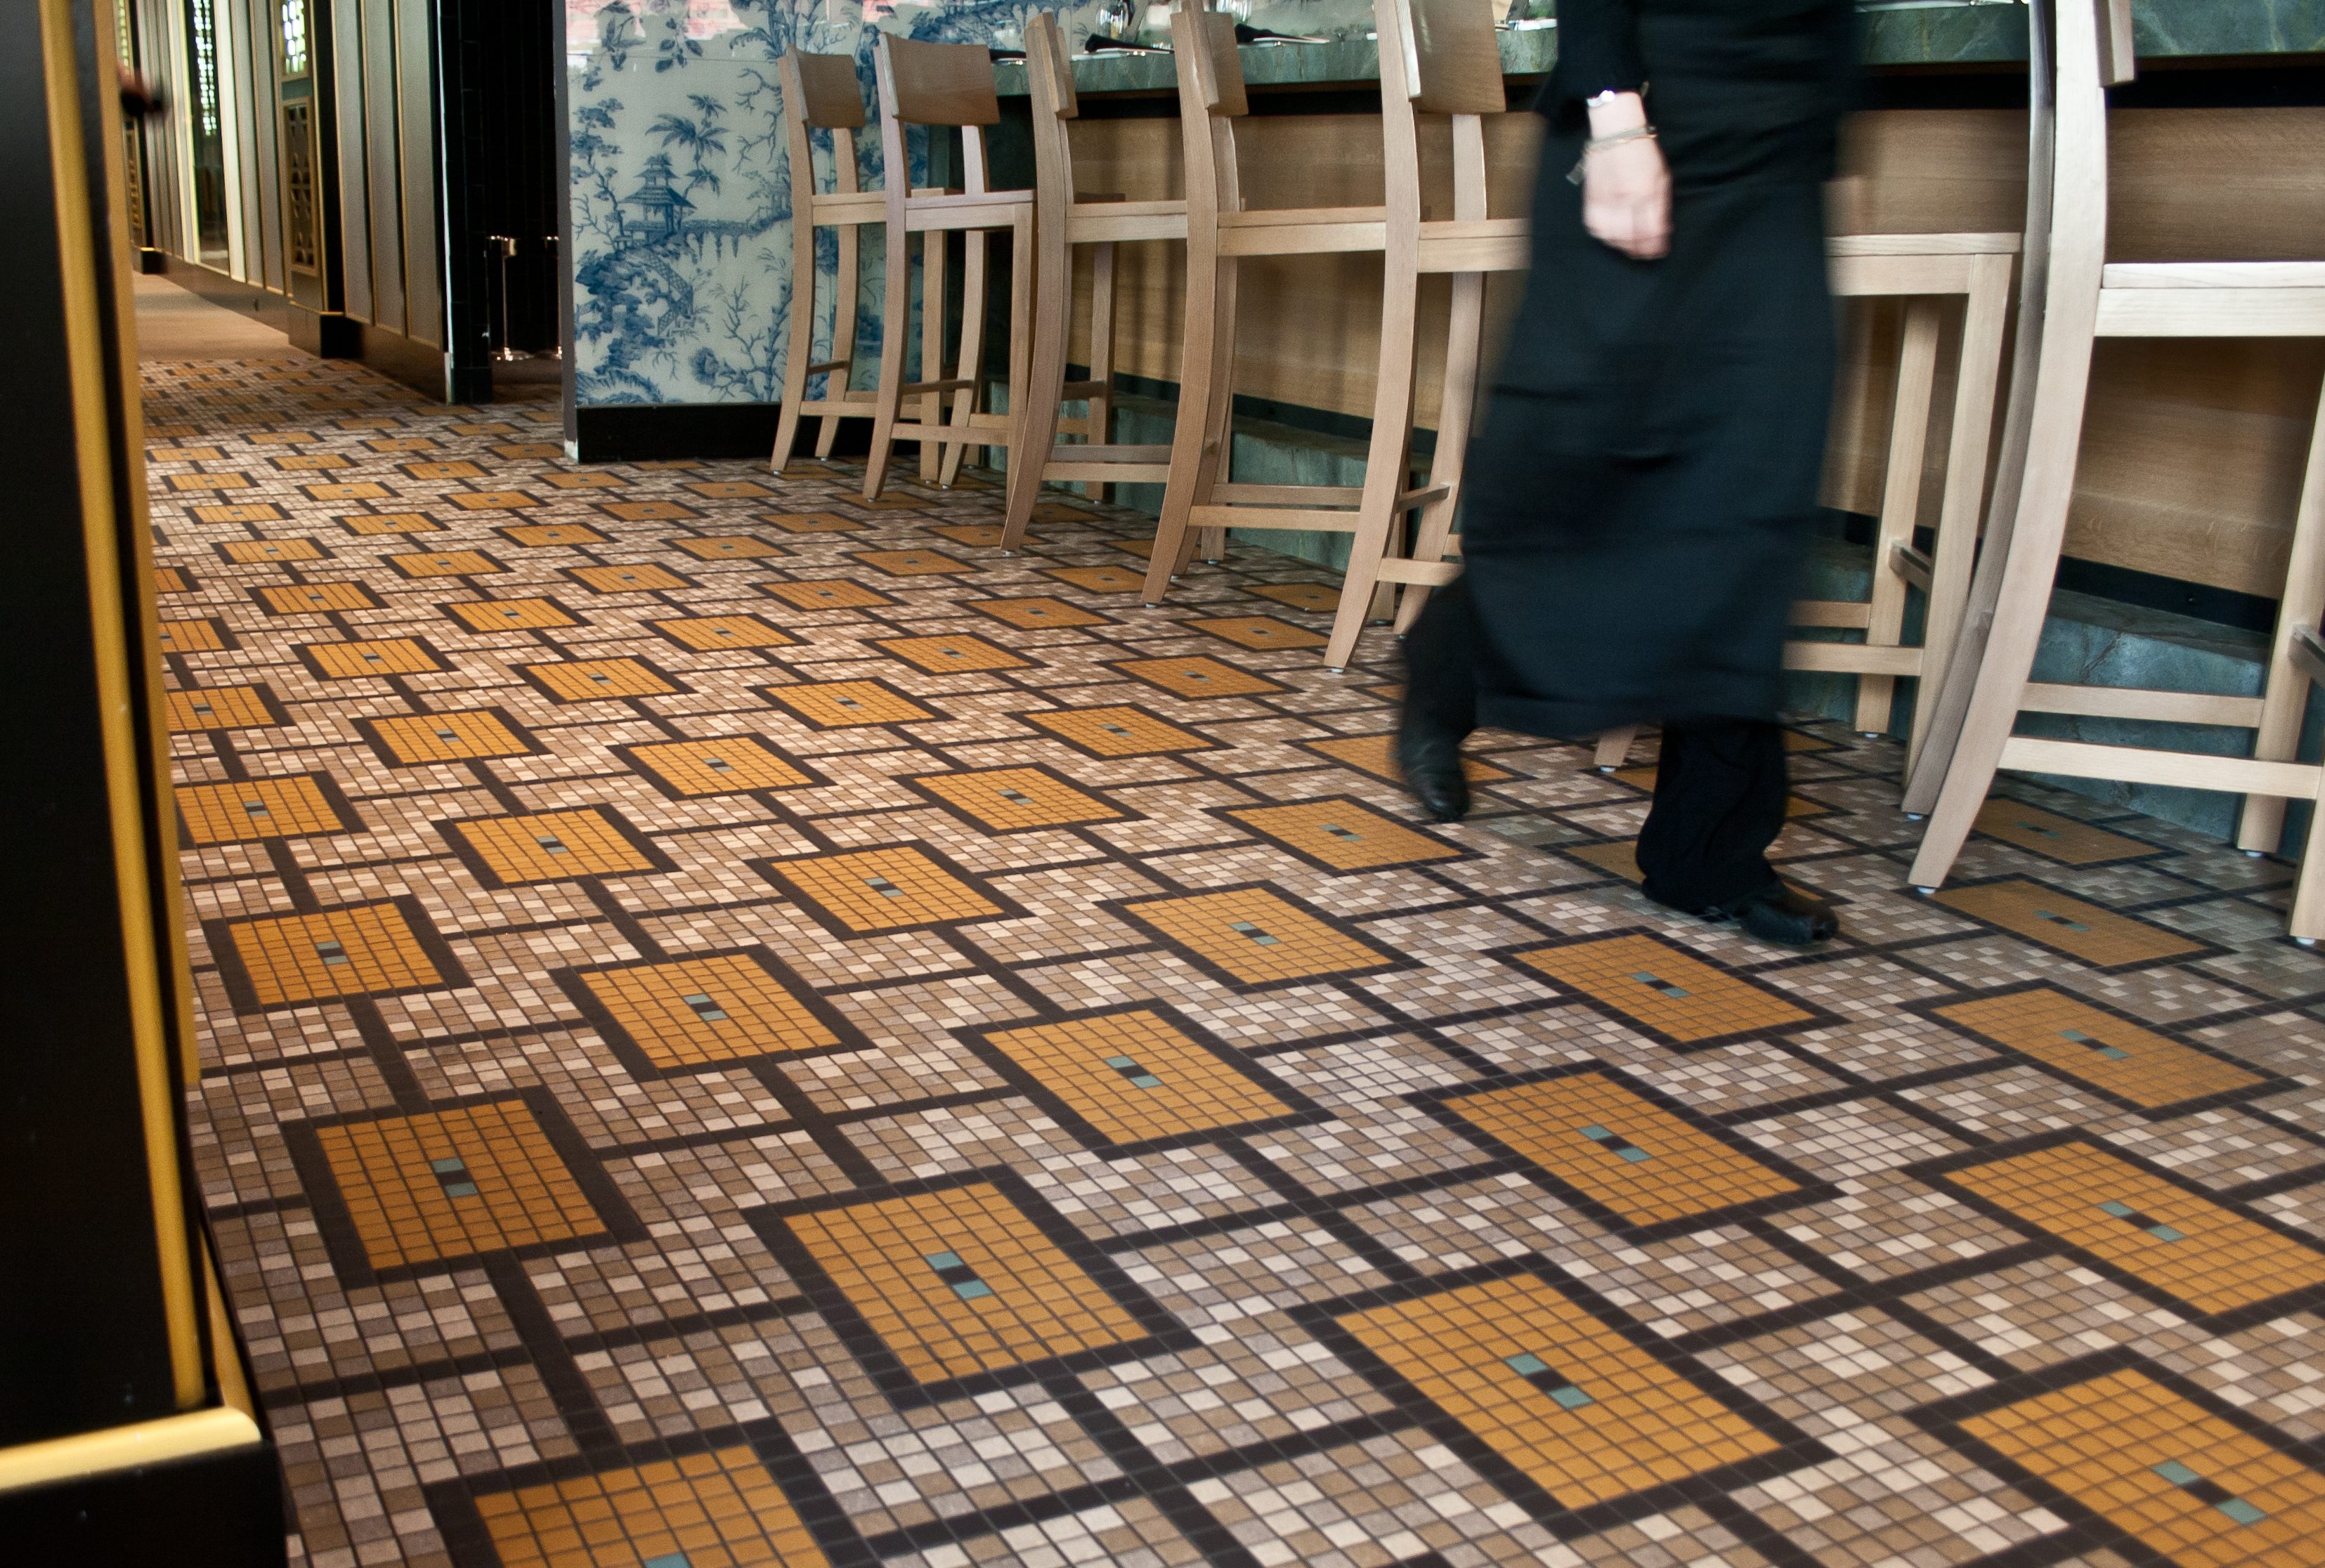 download above image - Porcelain Tile Restaurant 2015